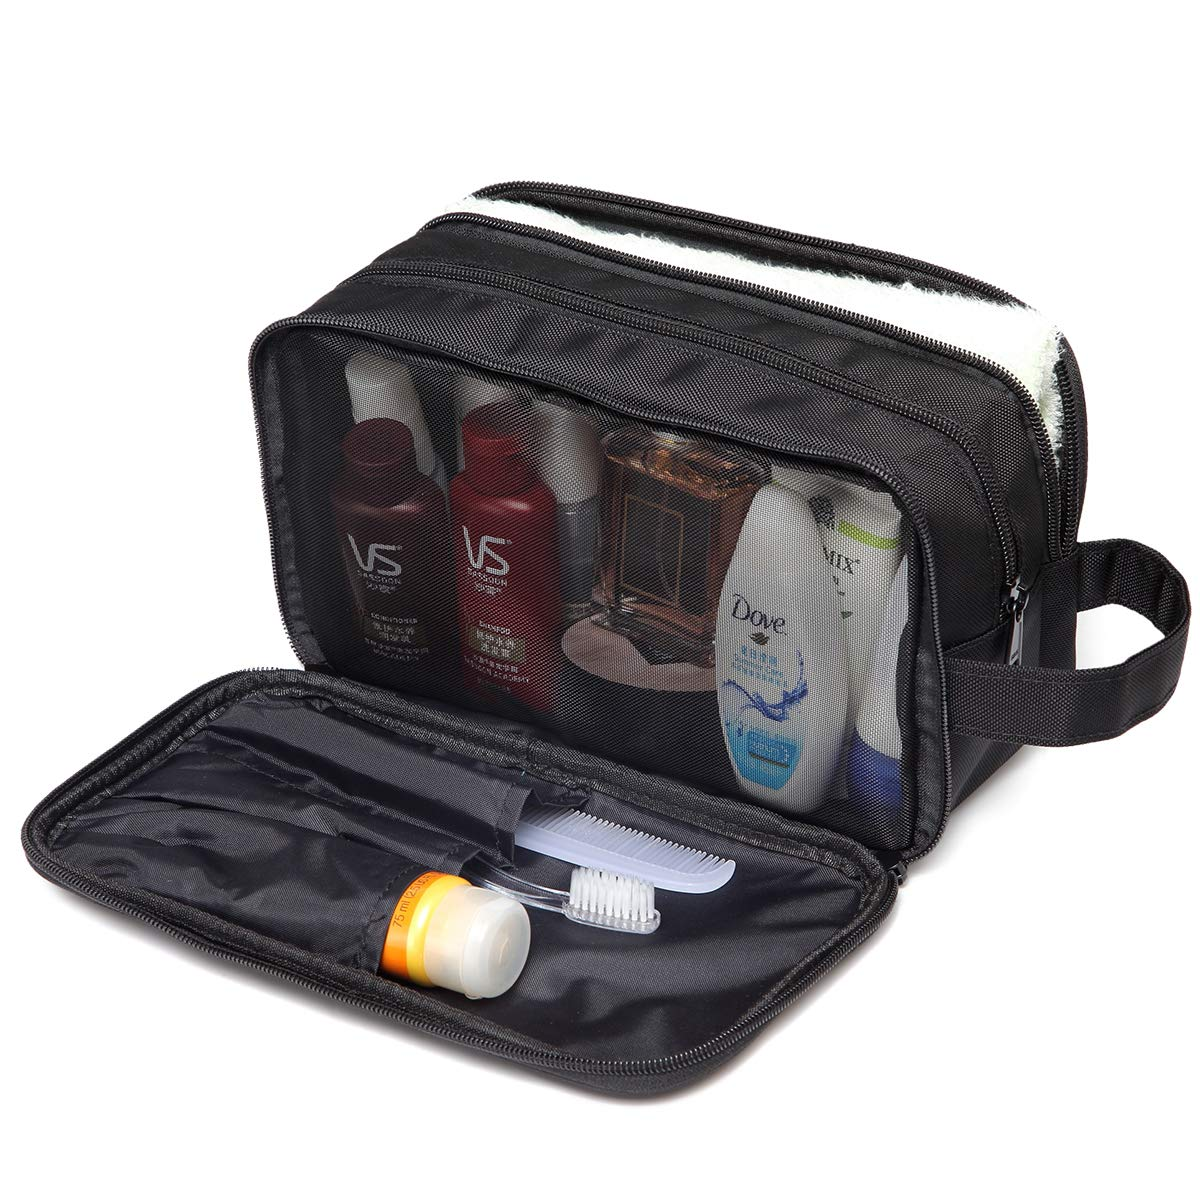 Toiletry Bag for Men and Women,VASCHY Waterproof Dopp Kit Travel Kit Case for Makeup, Cosmetic, Shaving with Separate Compartments Black Travel Accessories